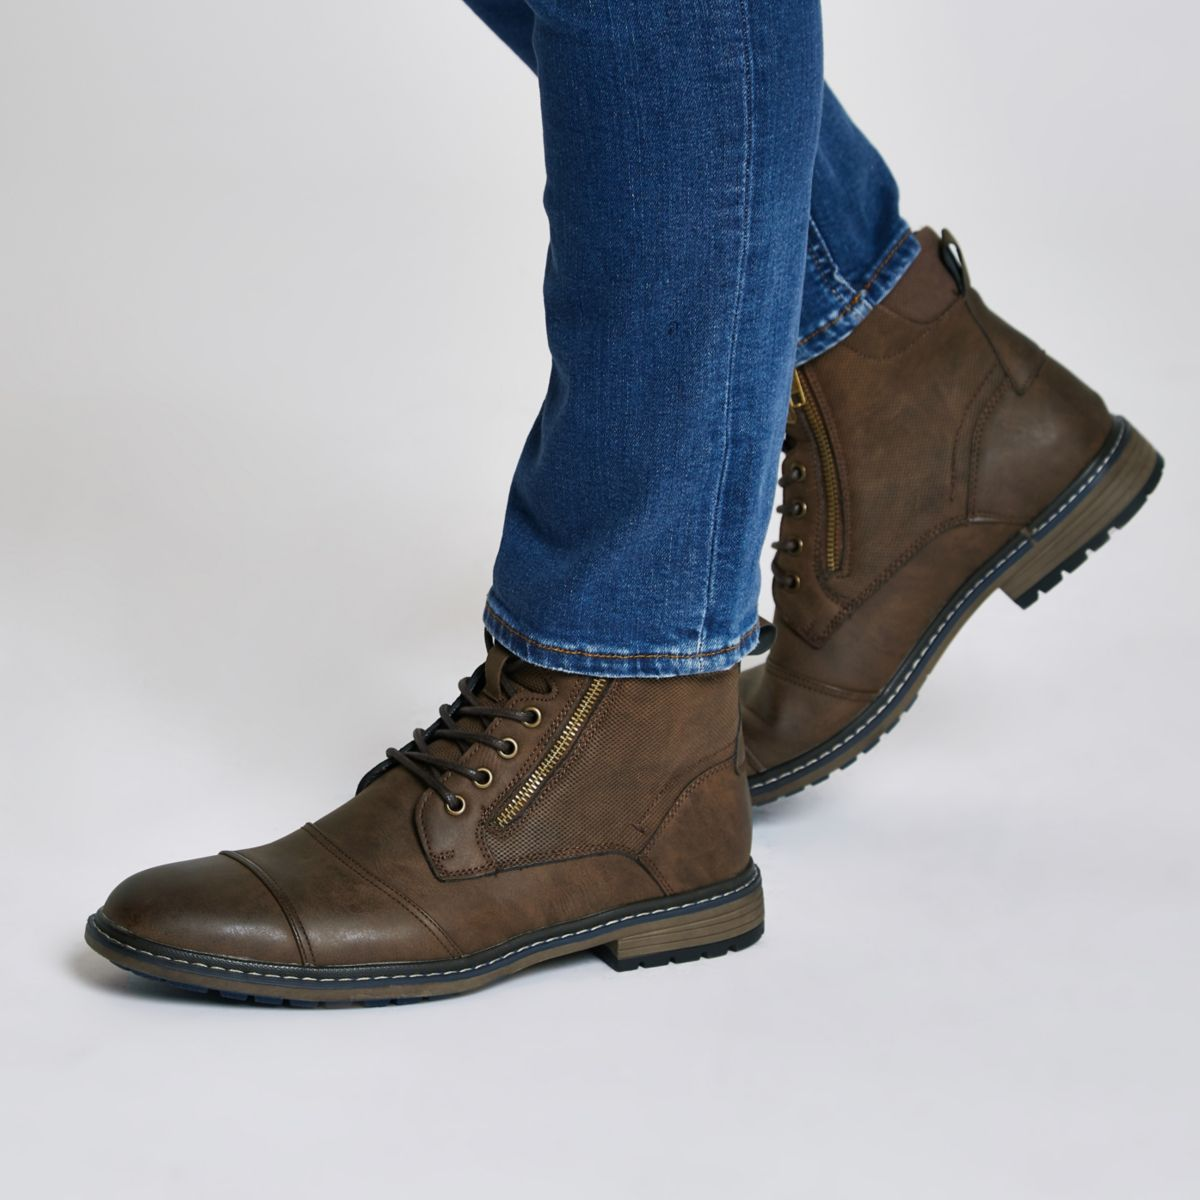 Dark brown lace-up military boots